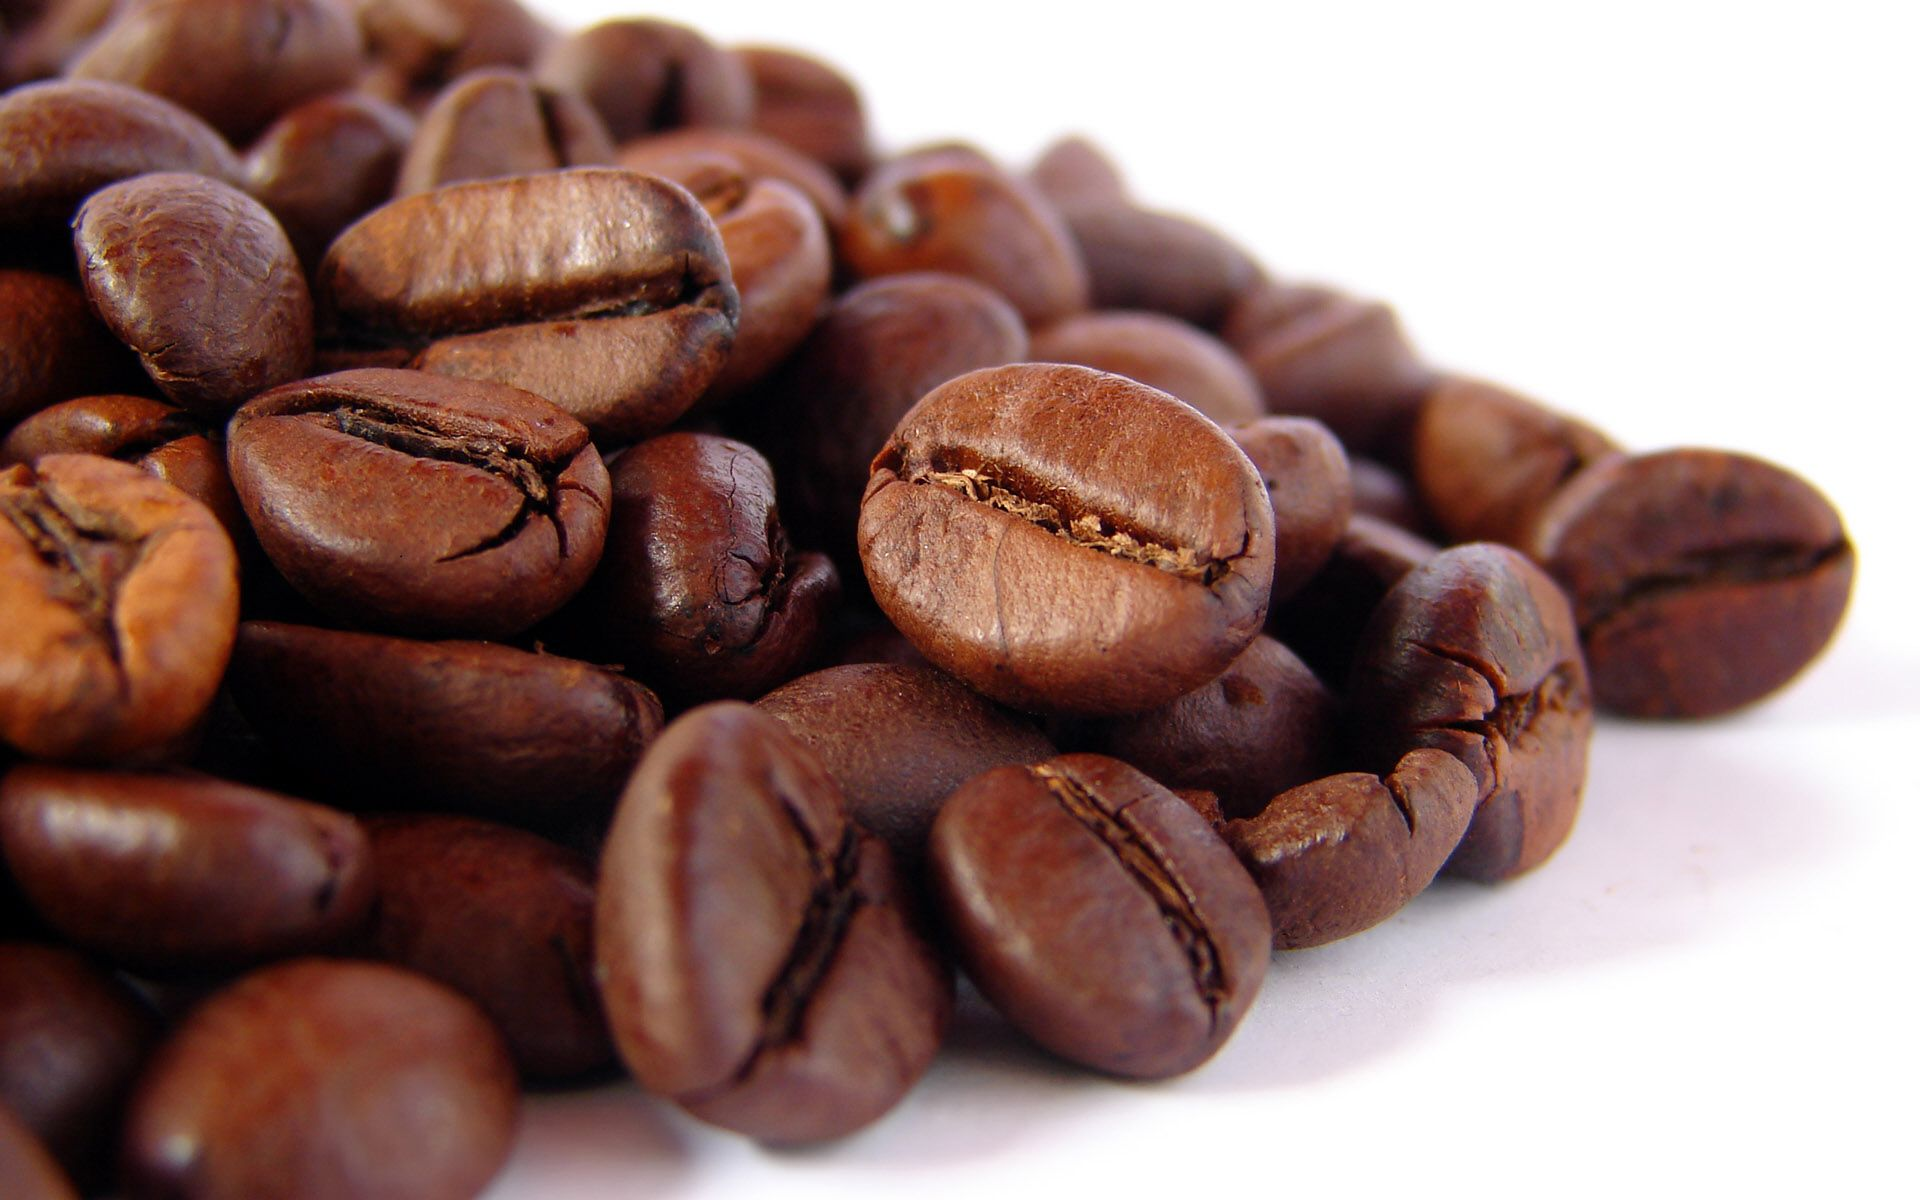 Roasted Robusta coffee bean